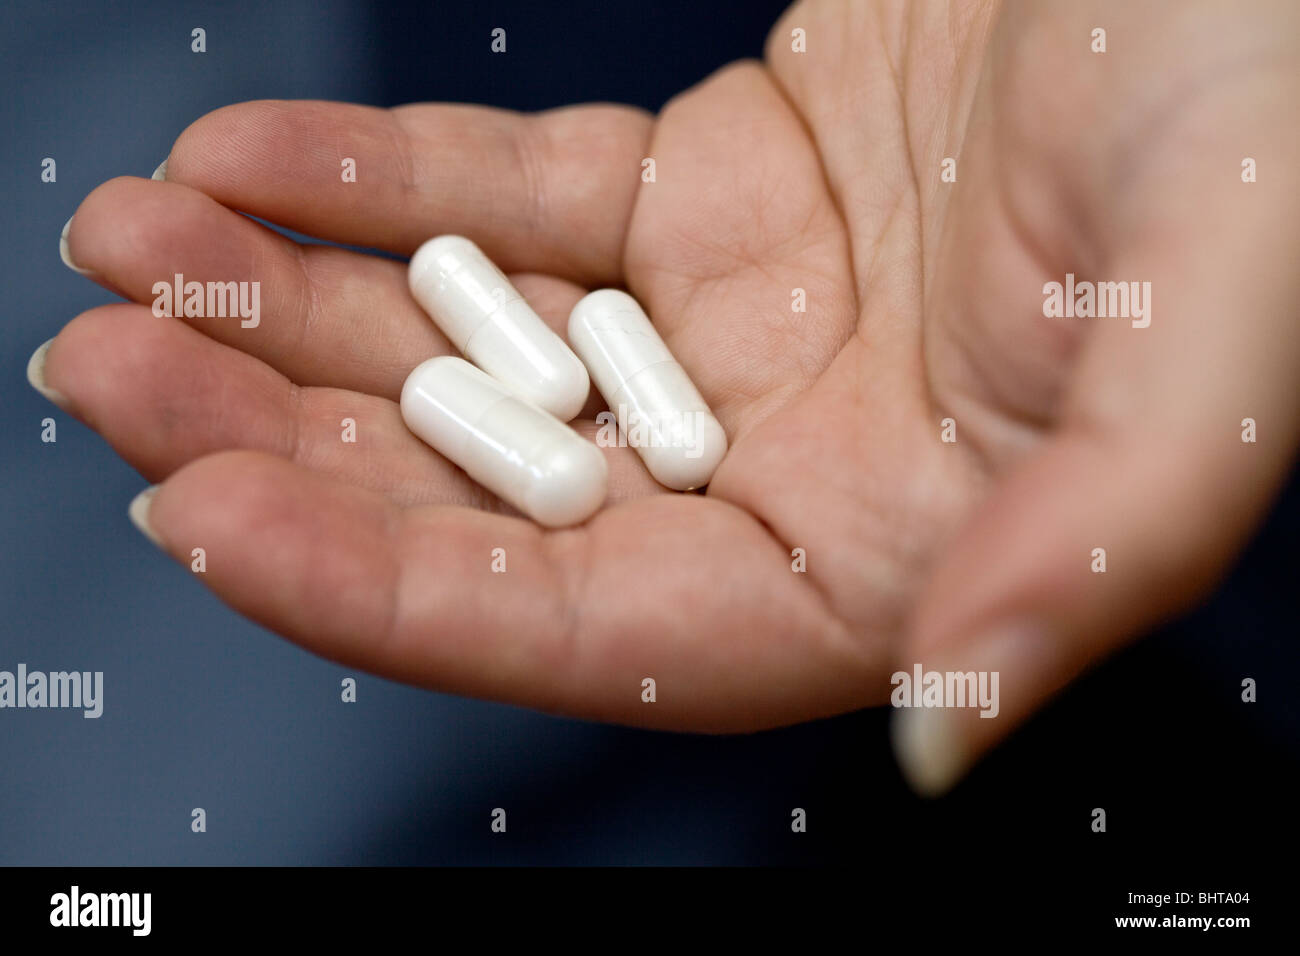 Capsules containing white powder in woman's hand. - Stock Image